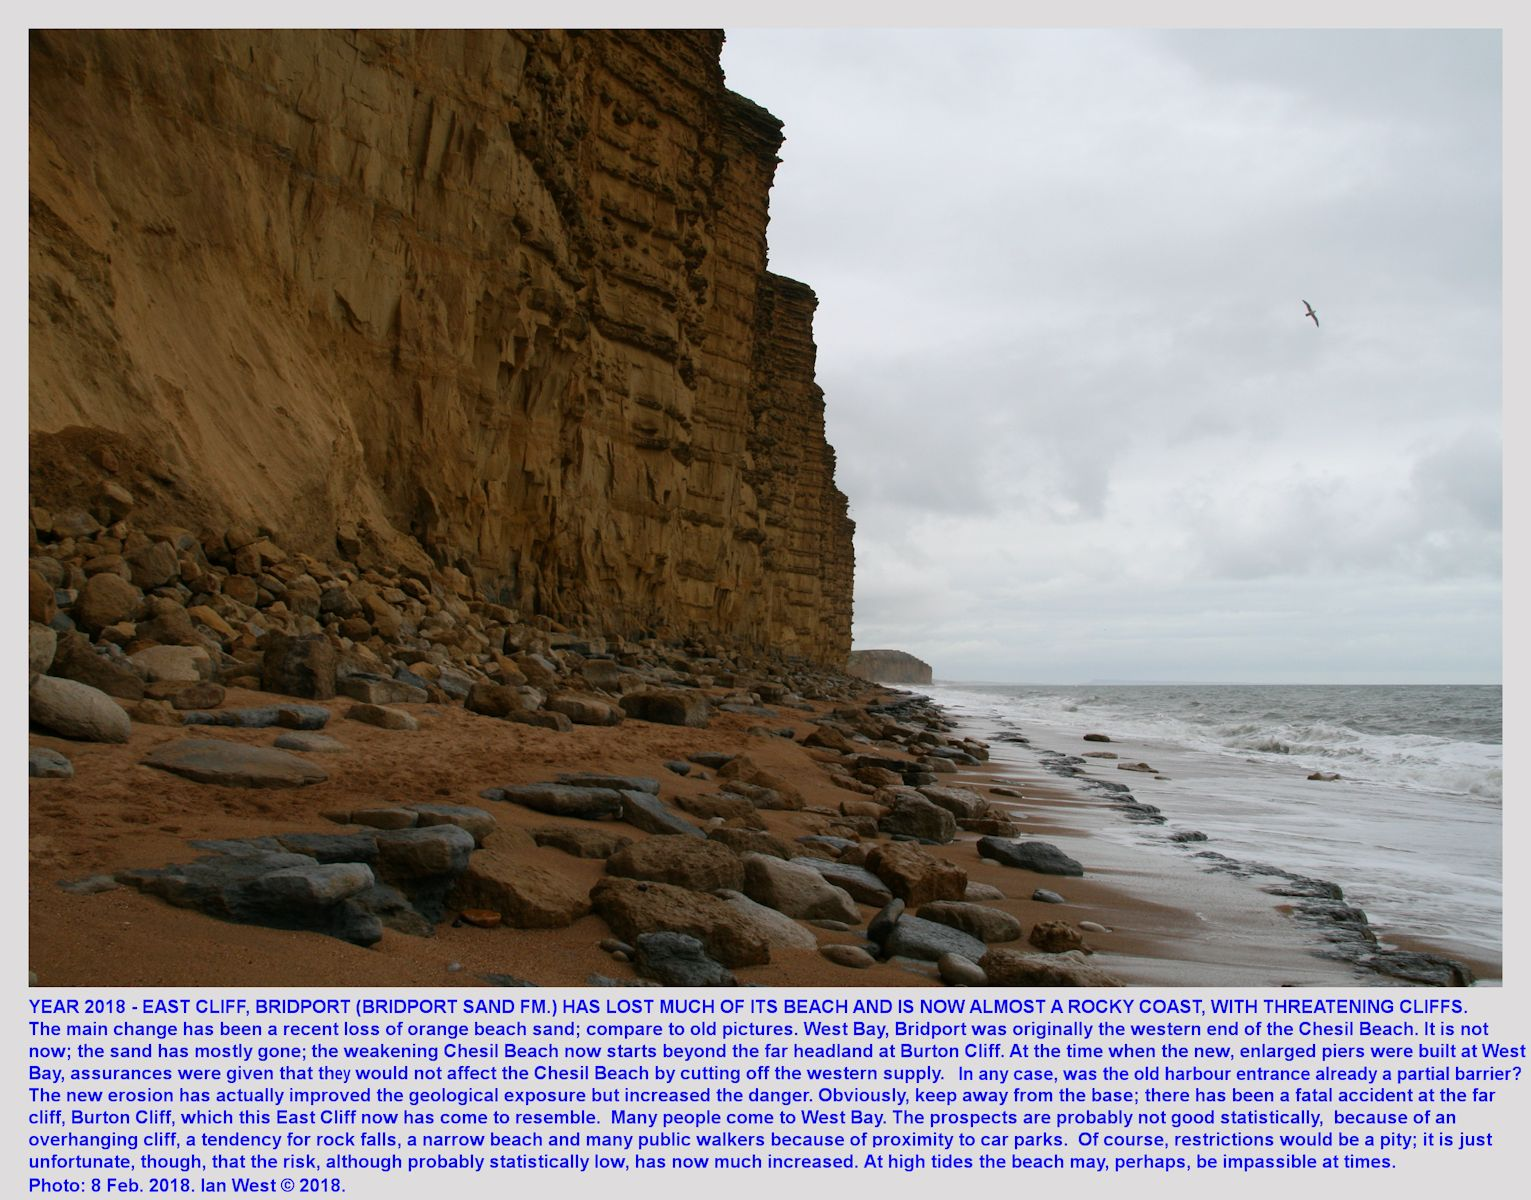 Close view of East Cliff, West Bay, Bridport, Dorset, with a narrow and eroded beach adjacent to vertical cliffs of Bridport Sand Formation, 8th February, 2018